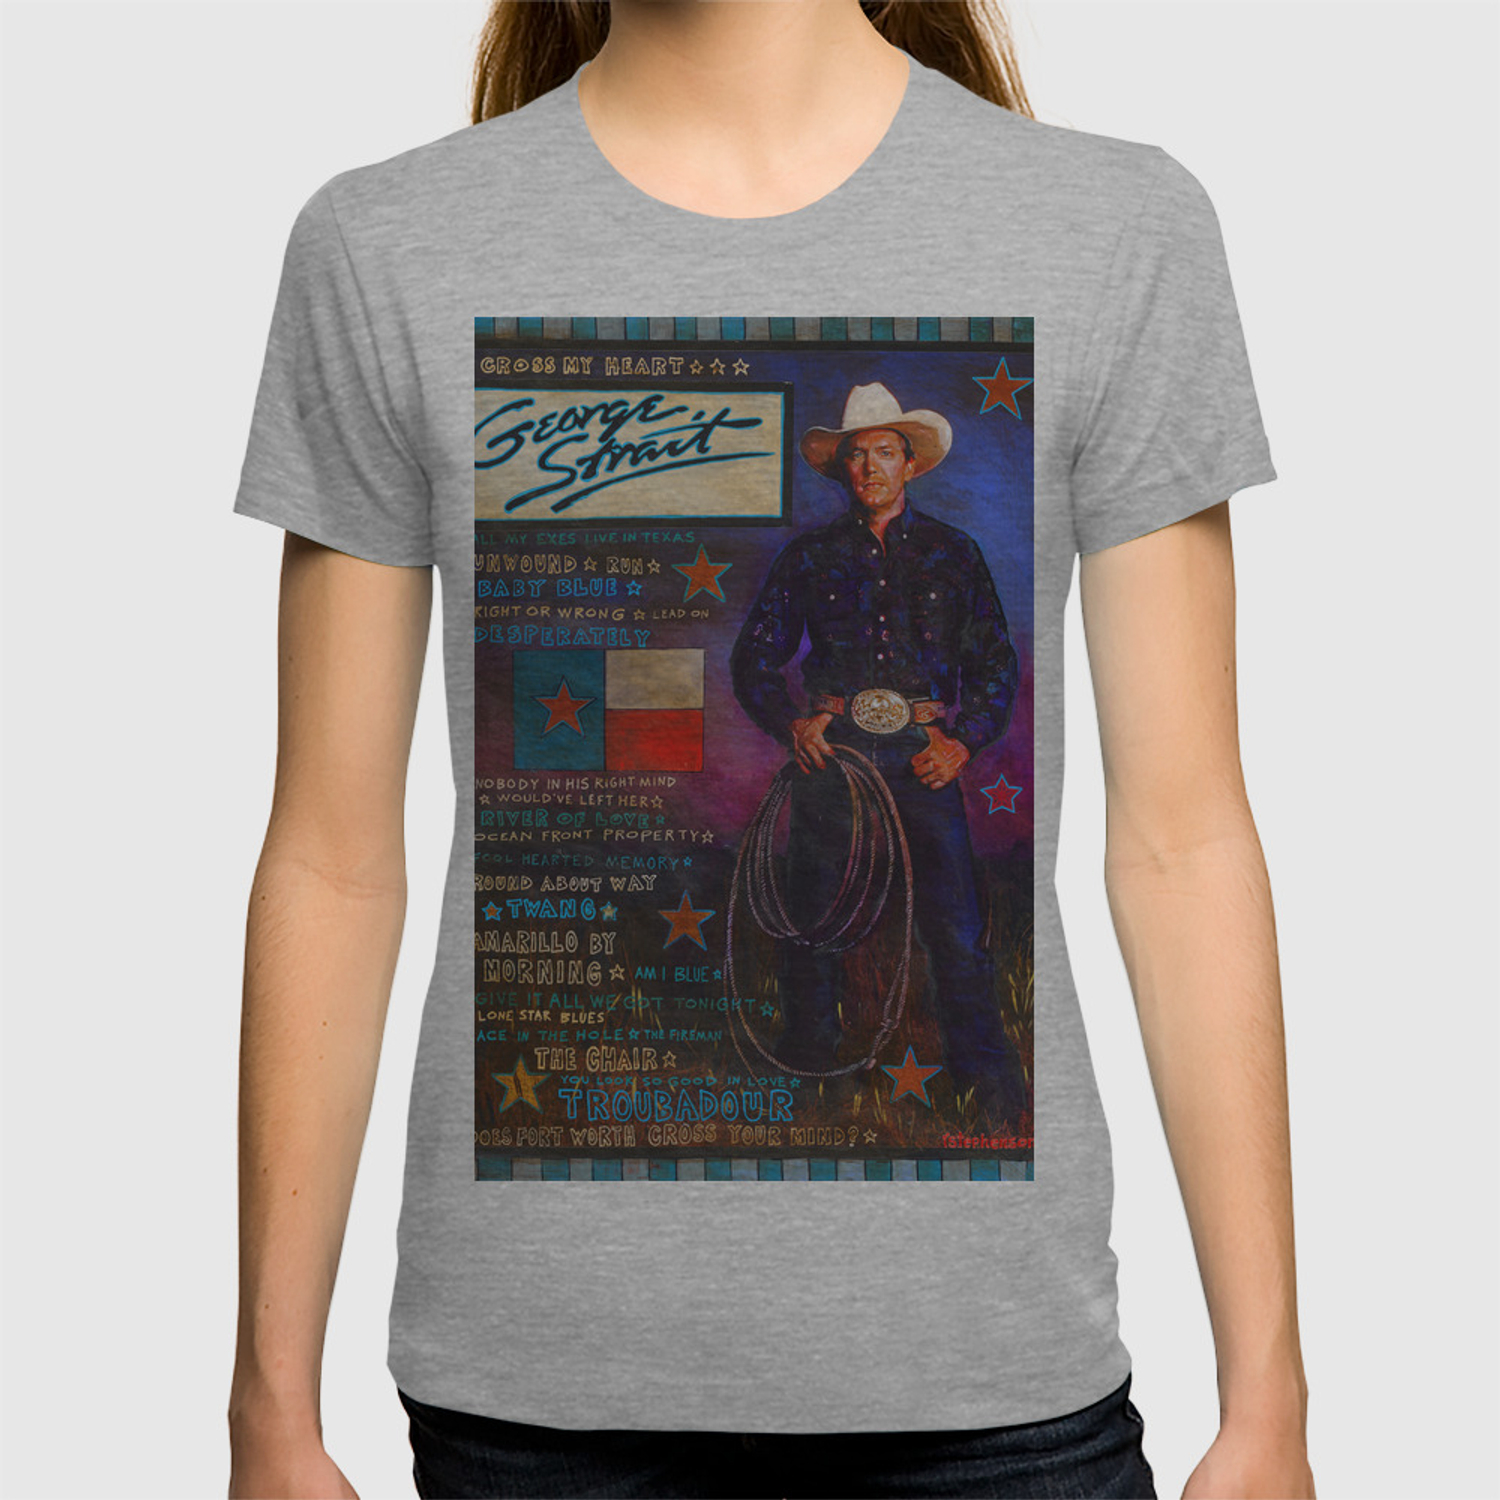 6eec52c6 George Strait T-shirt by raystephenson   Society6